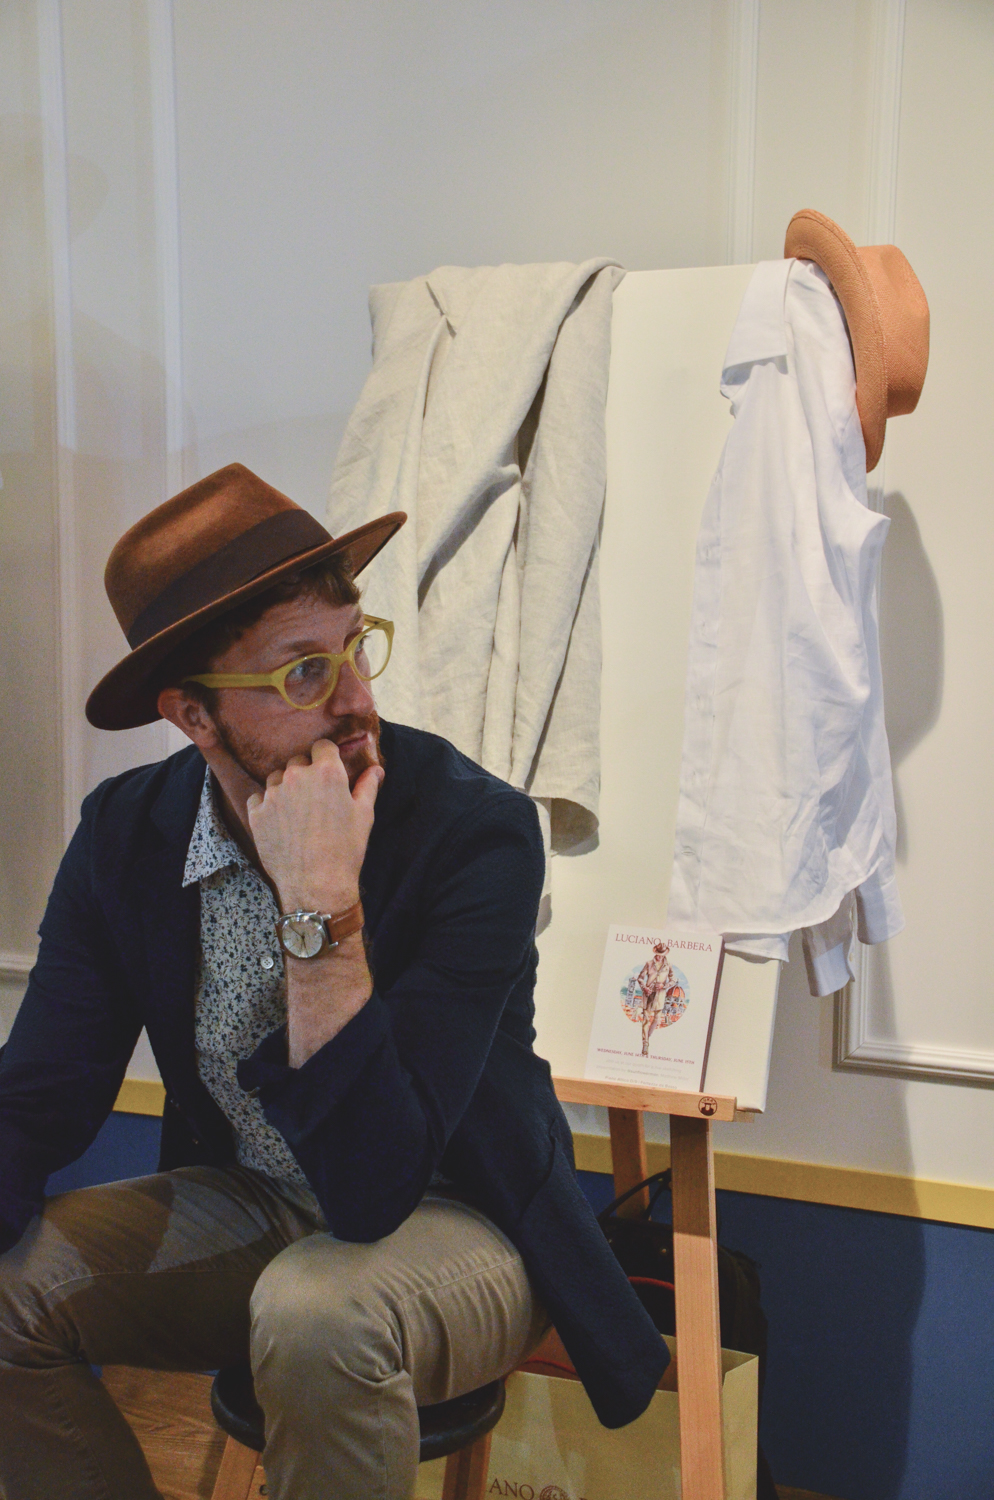 Sitting at the Luciano Barbera booth, preparing to make the live Pitti Uomo paintings